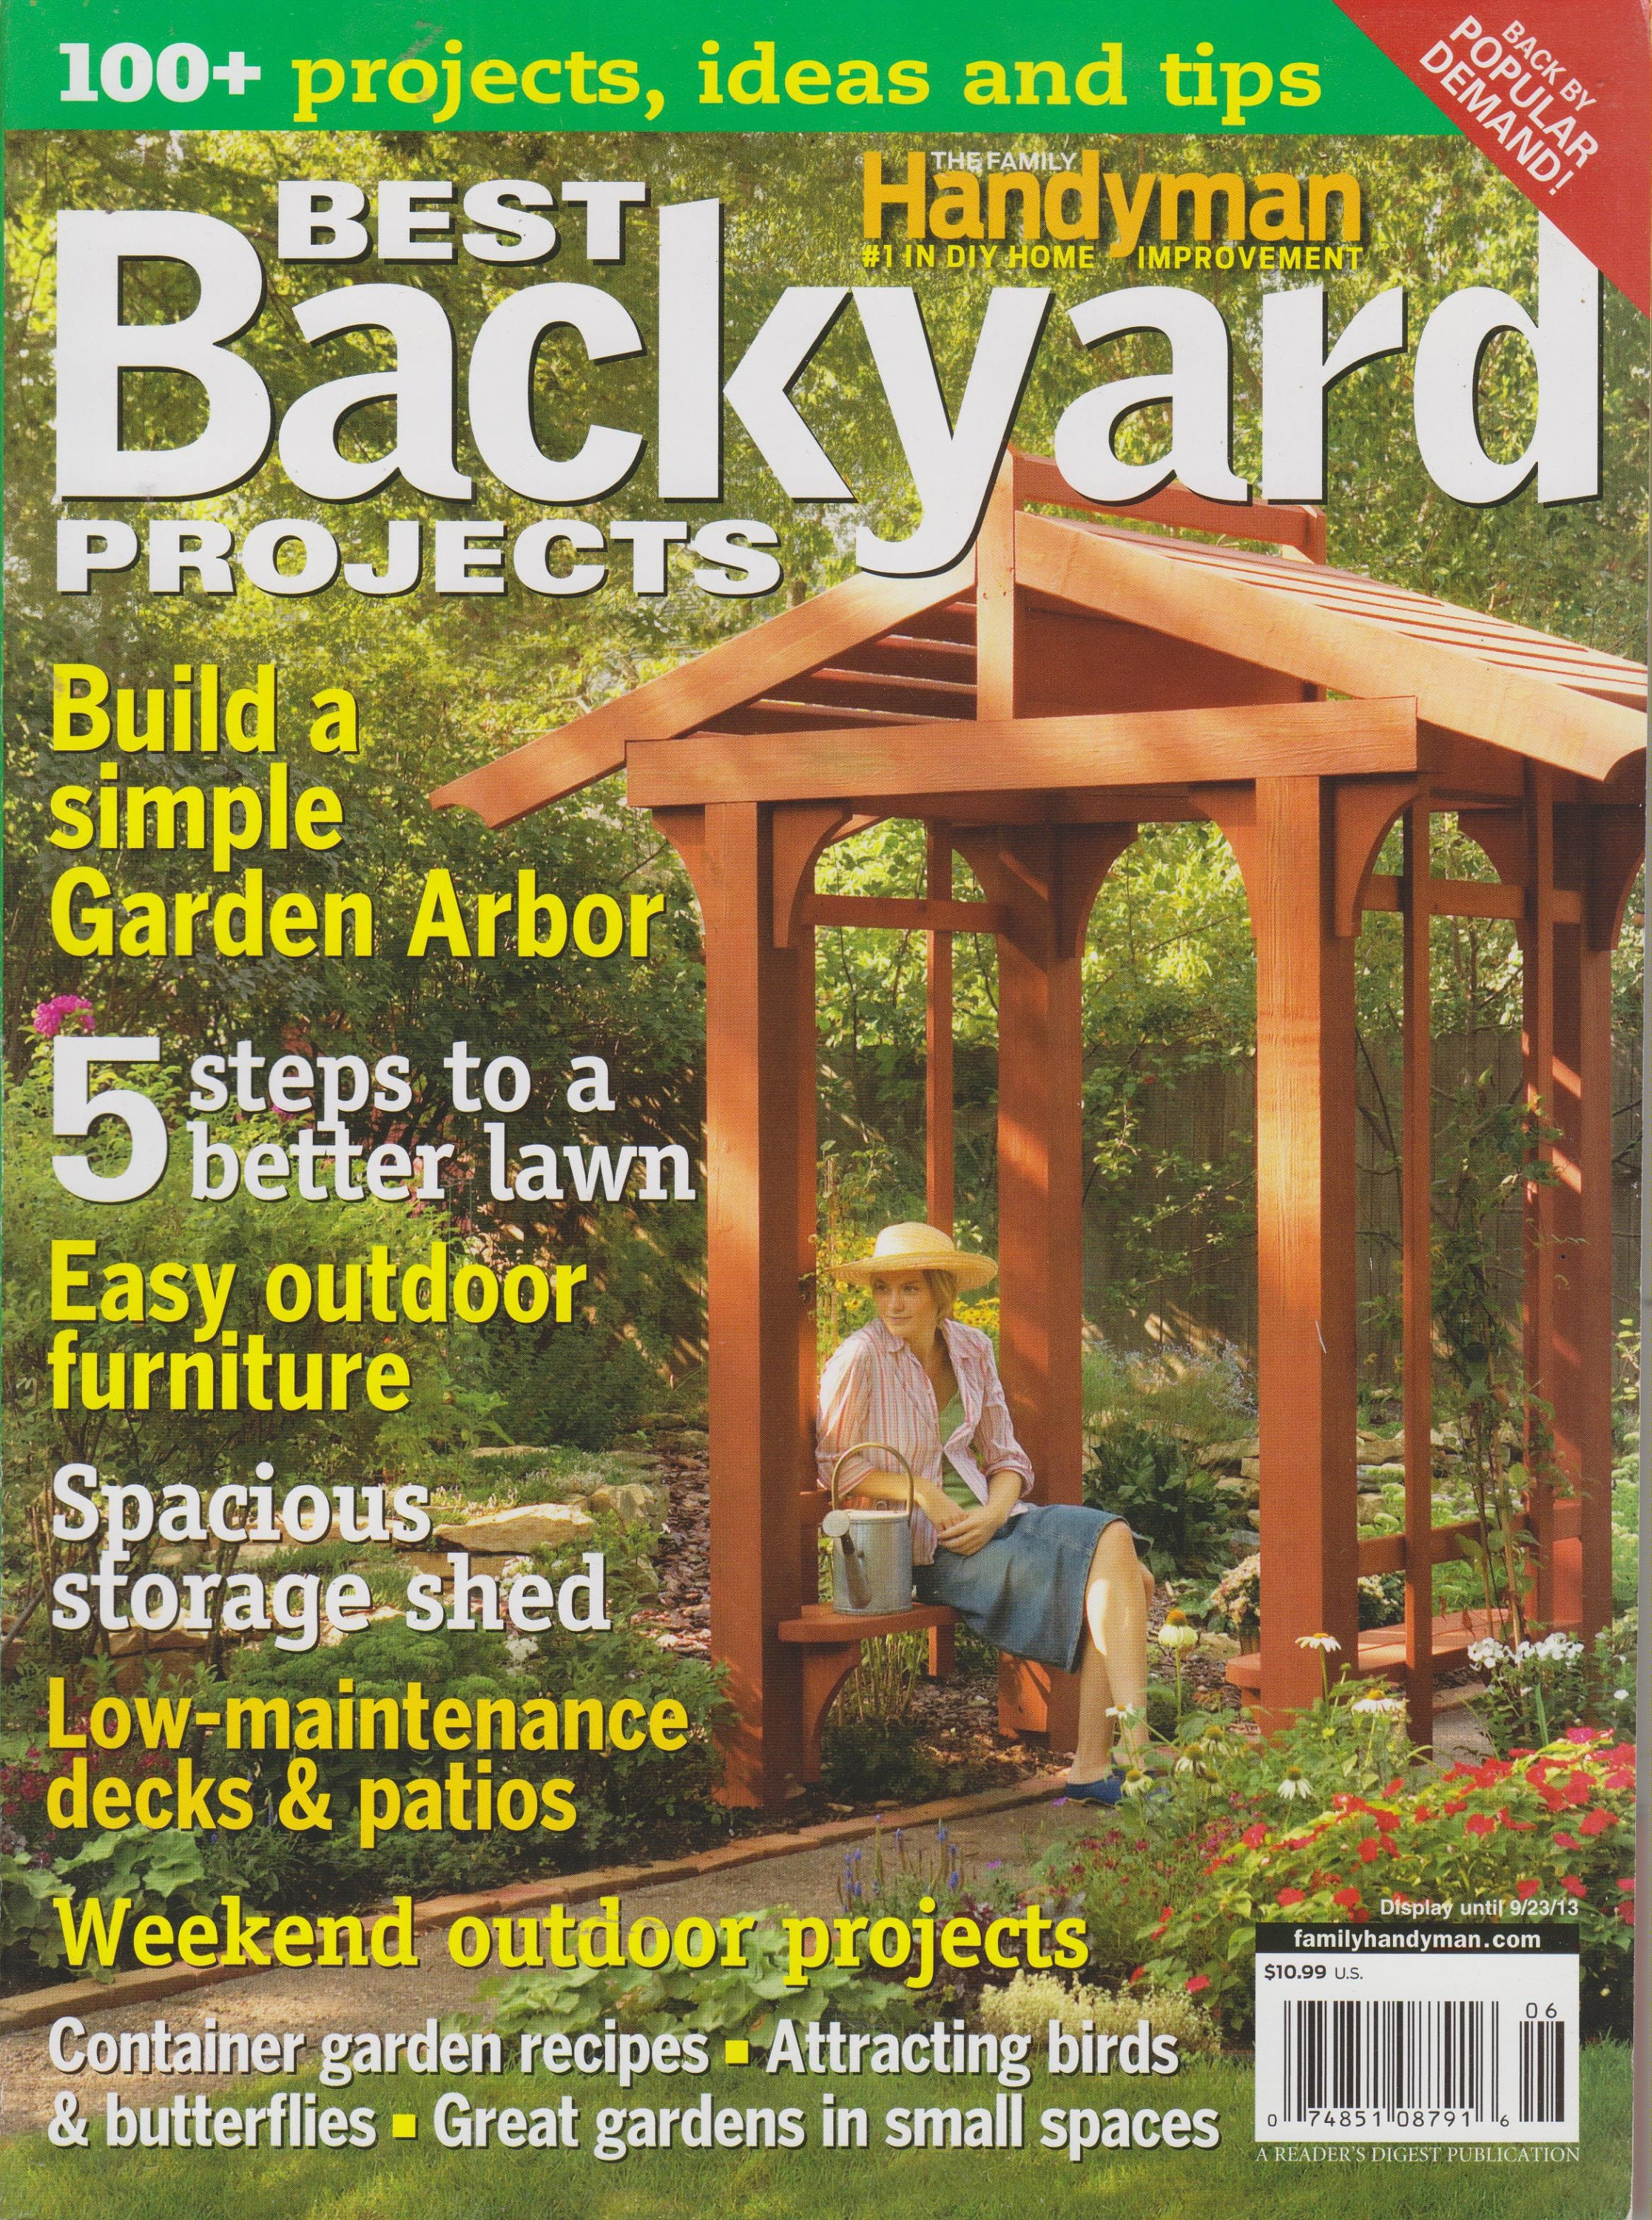 Best Backyard Projects (The Family Handyman) 100 Projects